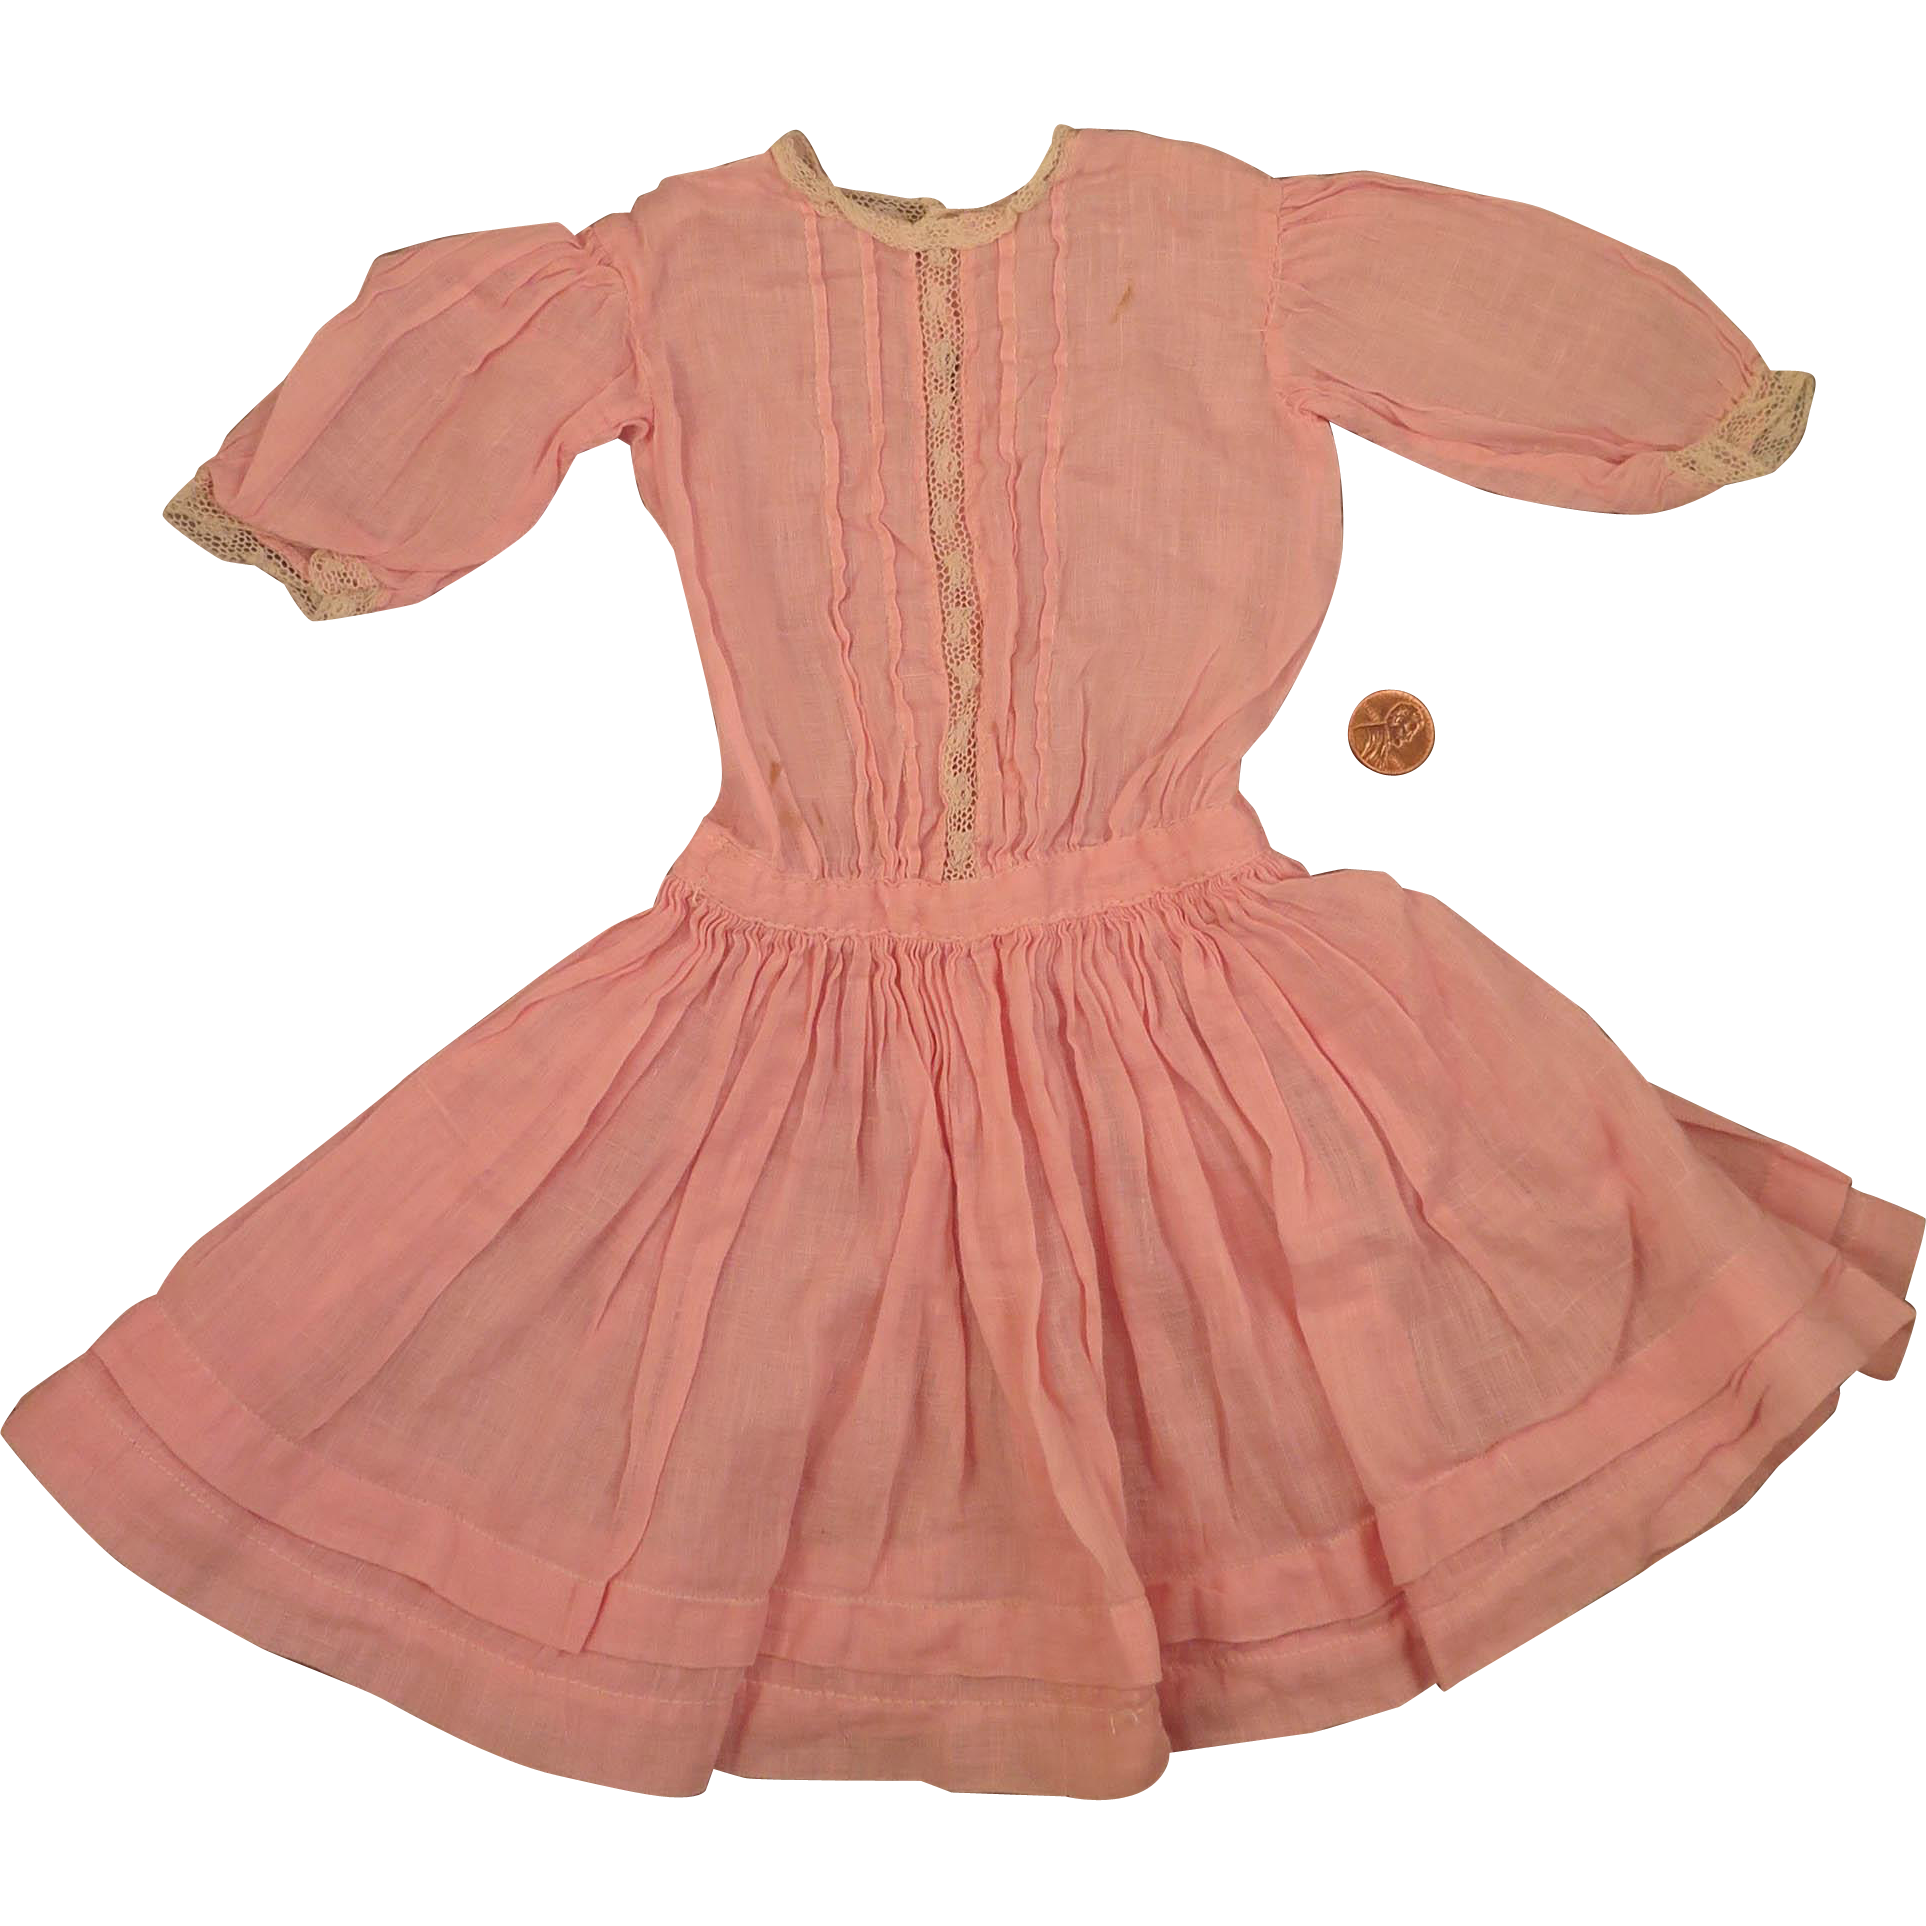 Antique Commericial Pink Cotton Dress for 17 to 18 inch Doll